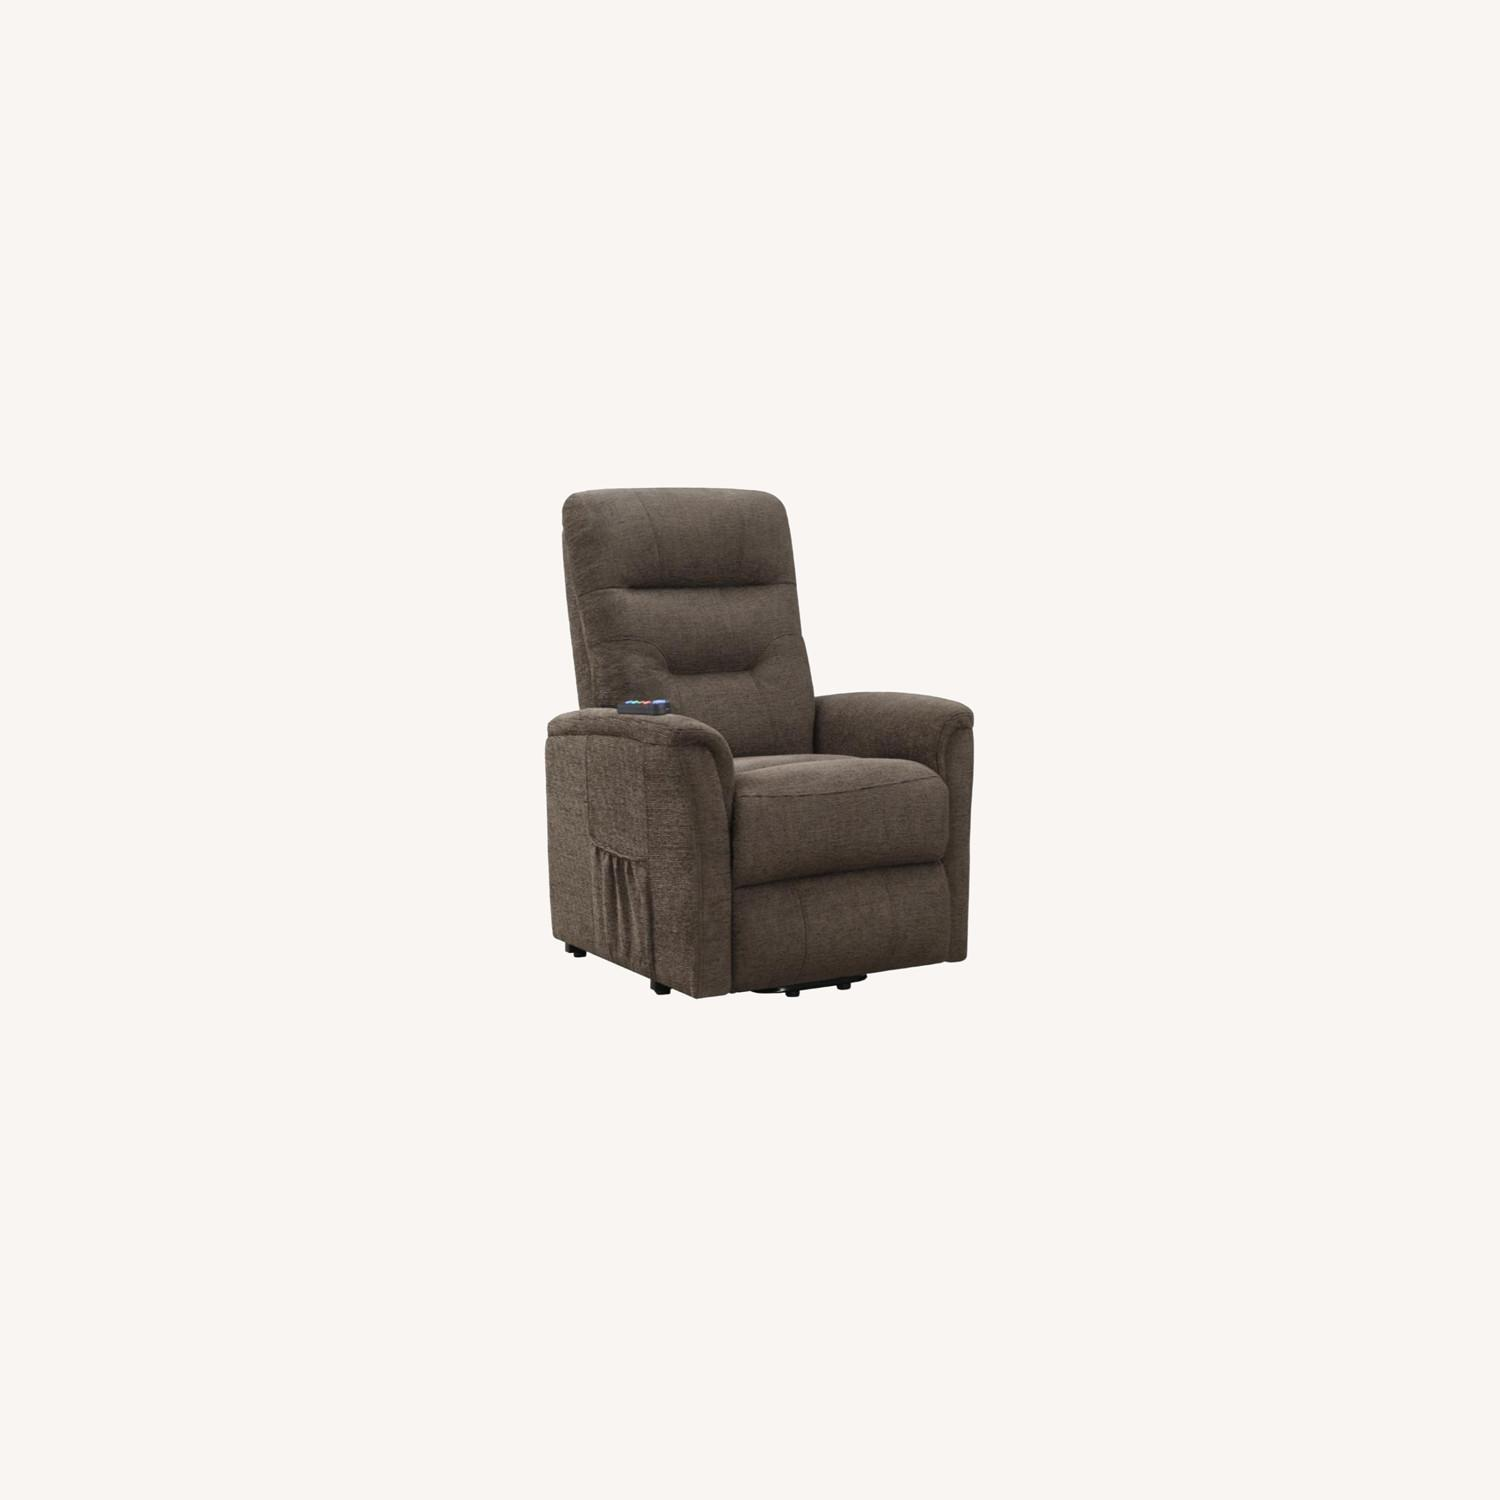 Power Lift Recliner Massage Chair In Brown Leather - image-4